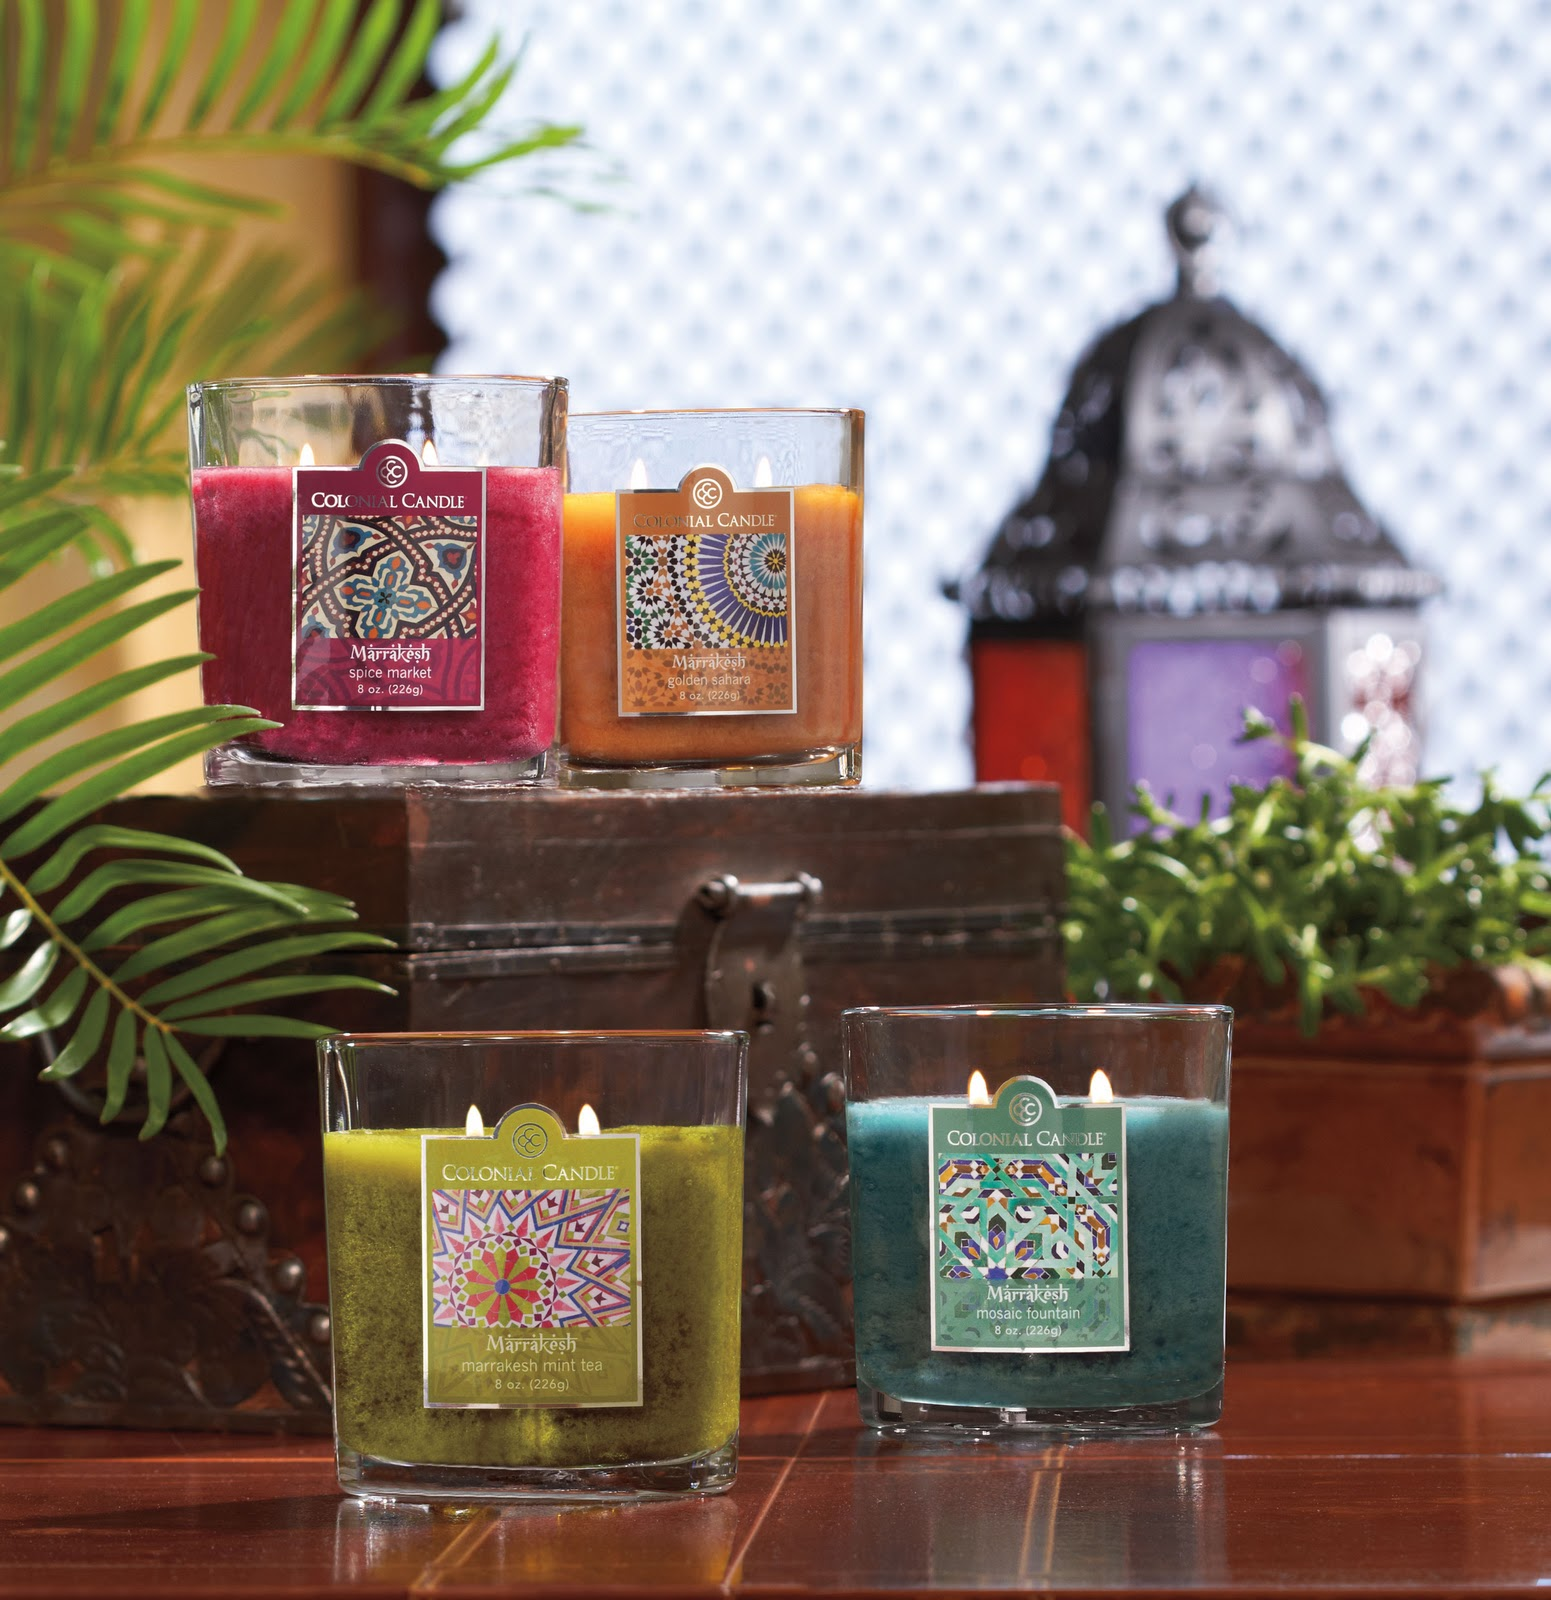 gift home today premium candle fragrances debut at atlanta gift premium candle fragrances debut at atlanta gift show